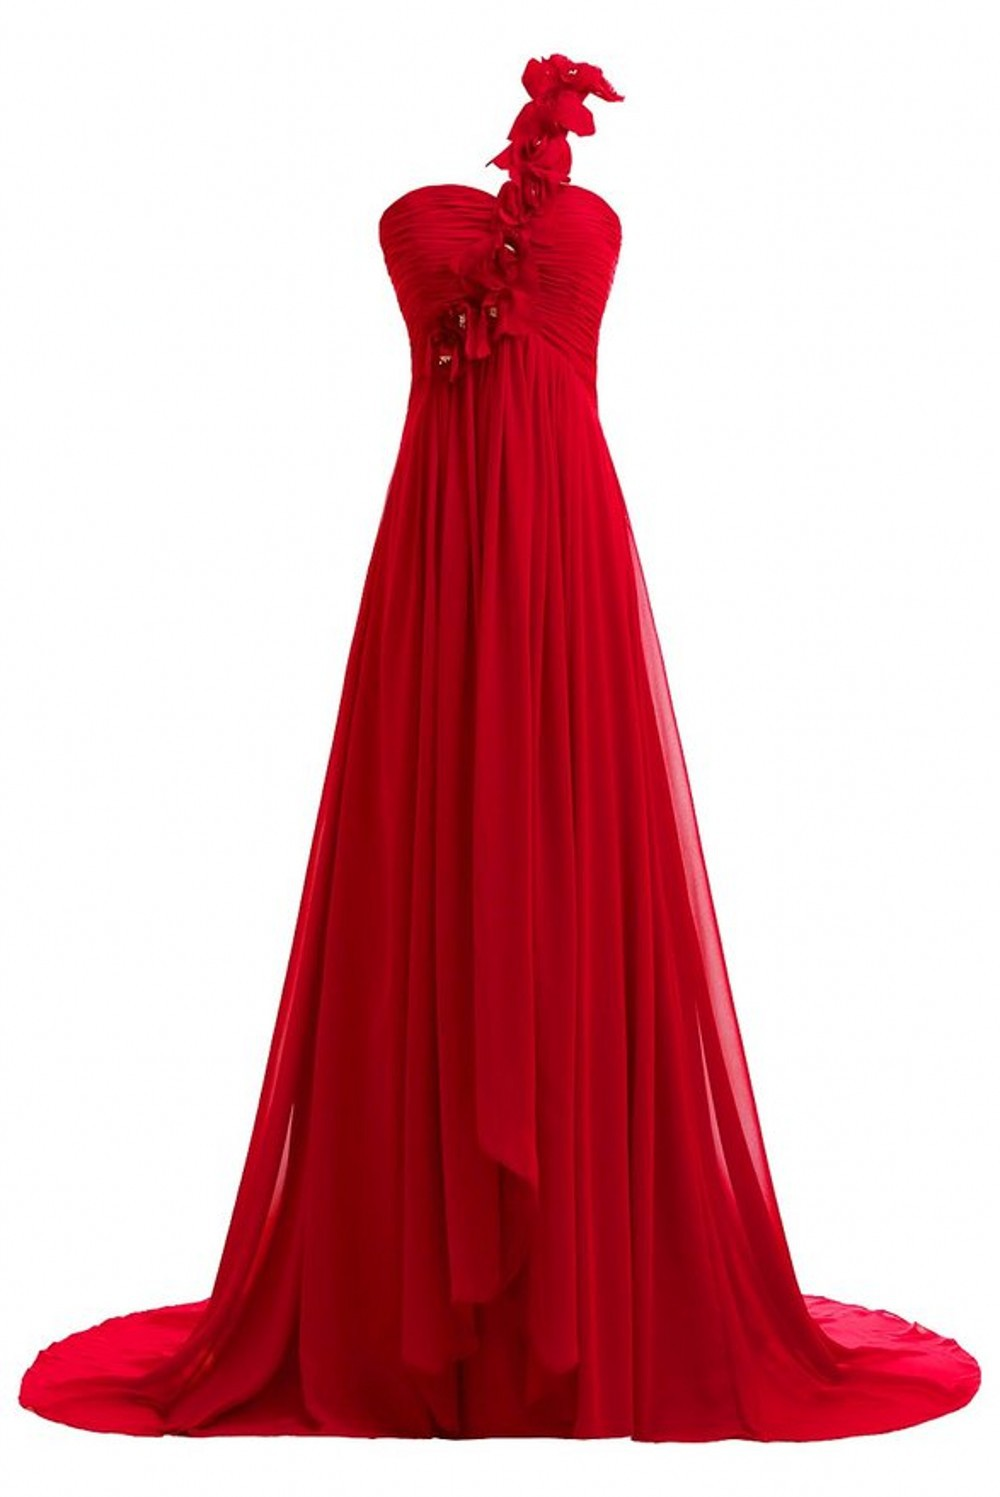 ae598933ed 2015 New Fashion Elegant Long Prom Dress One Shoulder With Lace Appliqued  Red Women Fashion Party Dresses